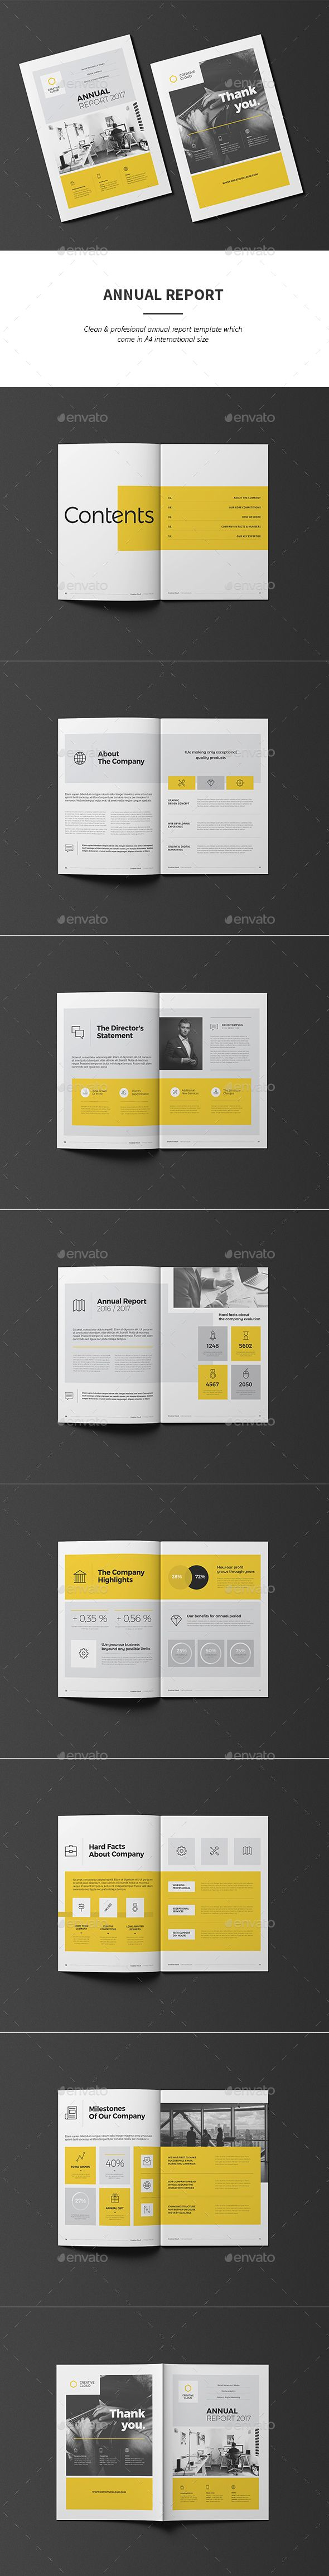 Annual Report — InDesign INDD #conceptual #indesign template • Download ➝ https://graphicriver.net/item/annual-report/18779477?ref=pxcr